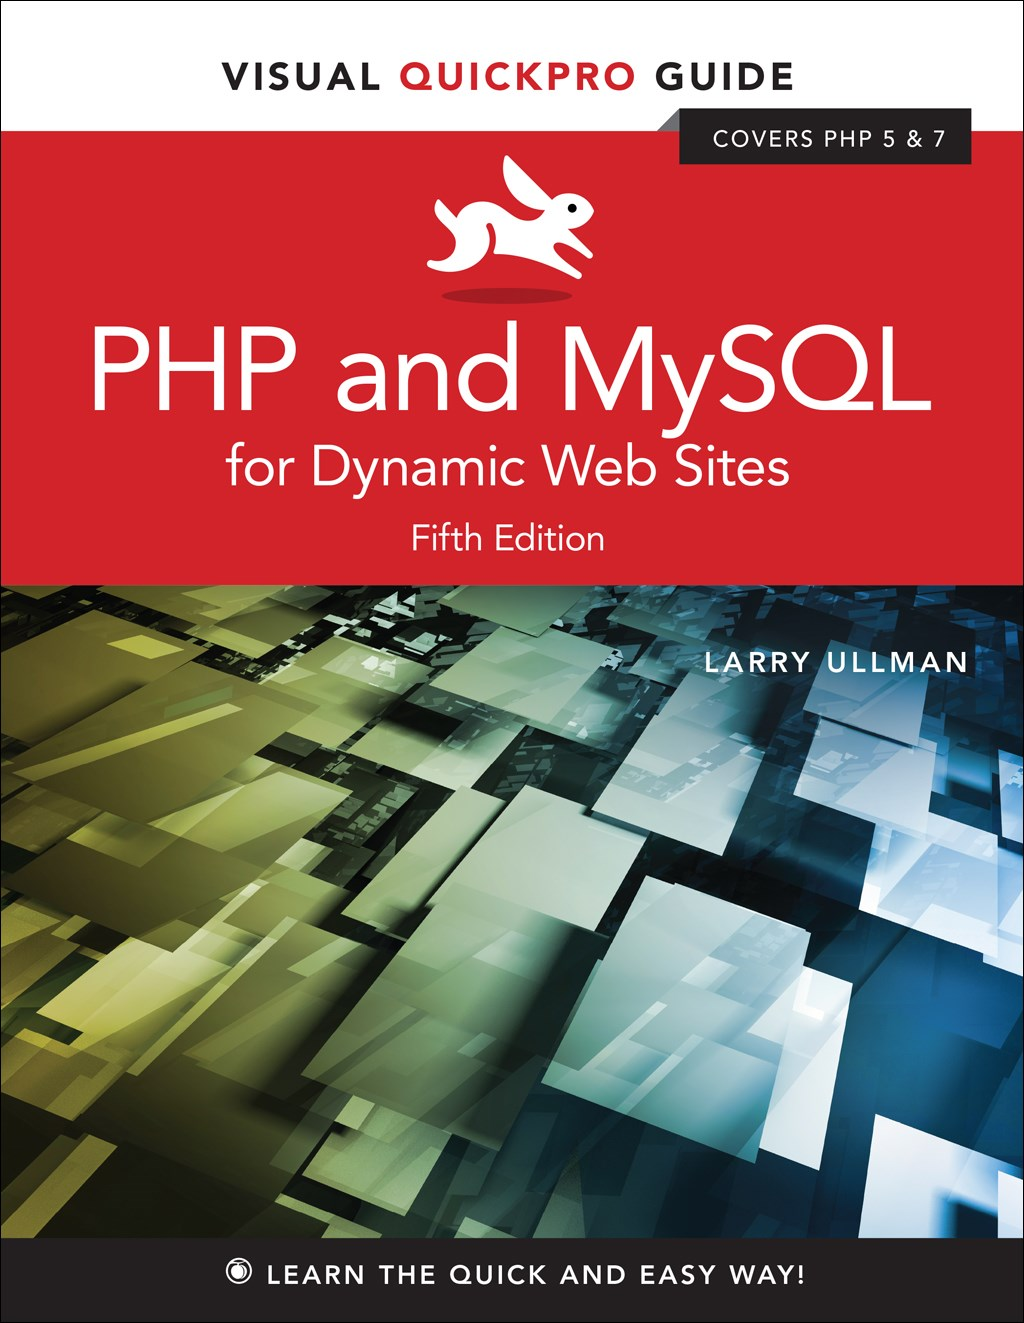 PHP and MySQL for Dynamic Web Sites: Visual QuickPro Guide, Web Edition, 5th Edition